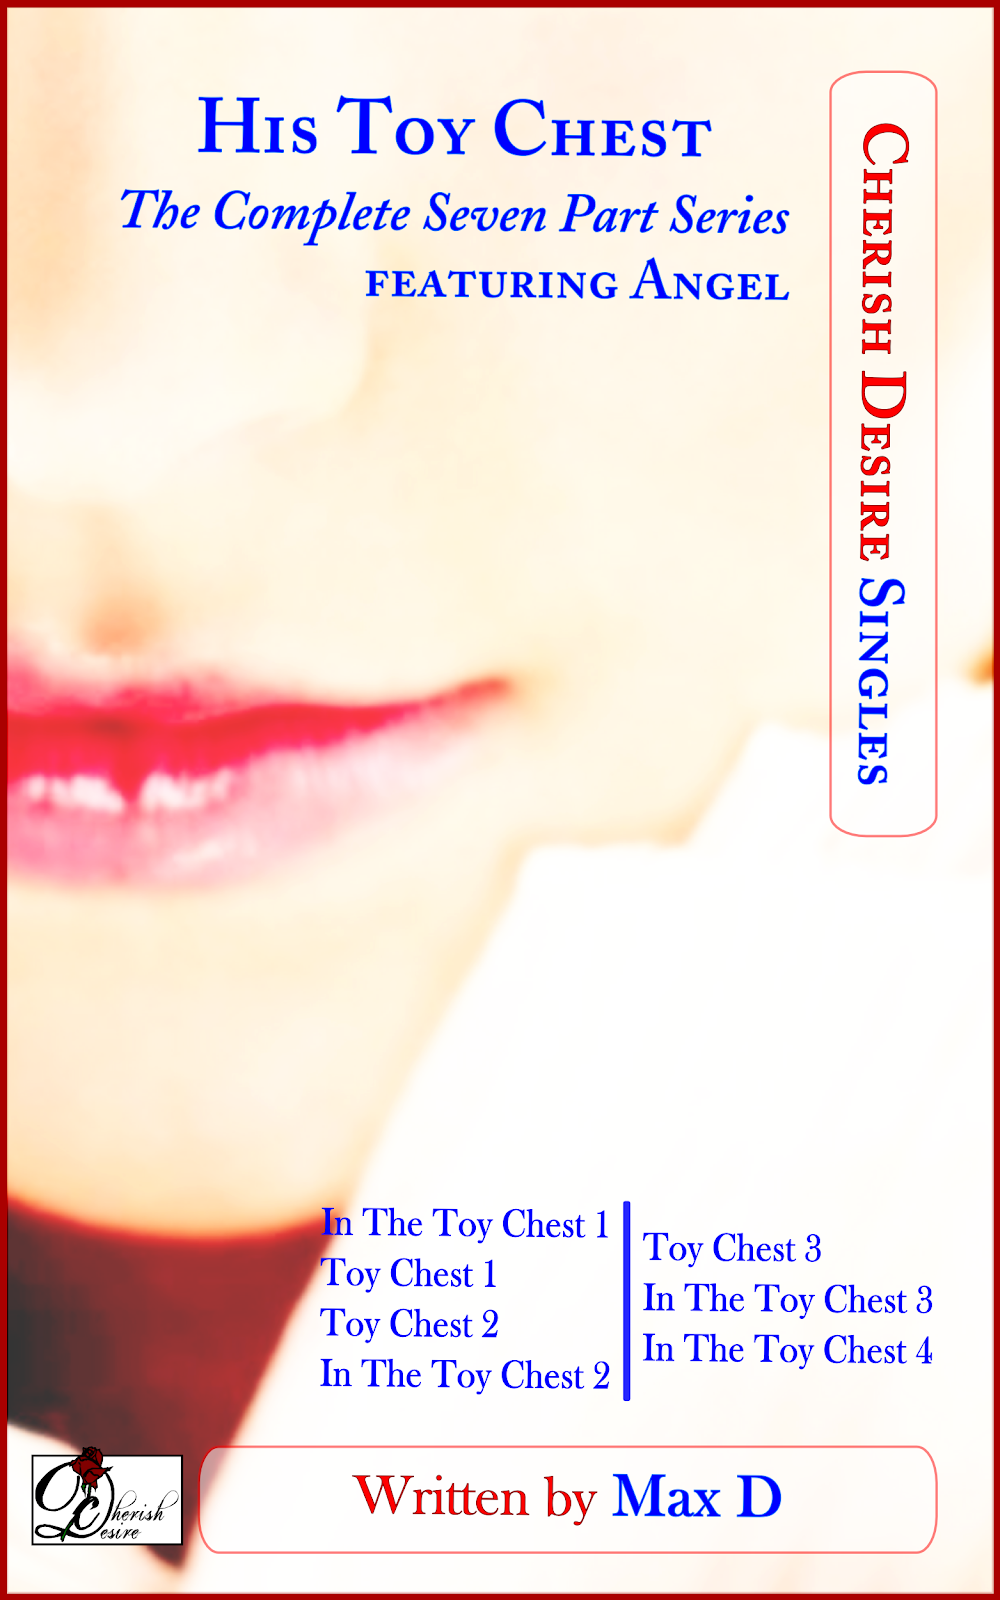 Cherish Desire Singles: His Toy Chest (The Complete Seven Part Series) featuring Angel, Angel, Tom, Max D, erotica